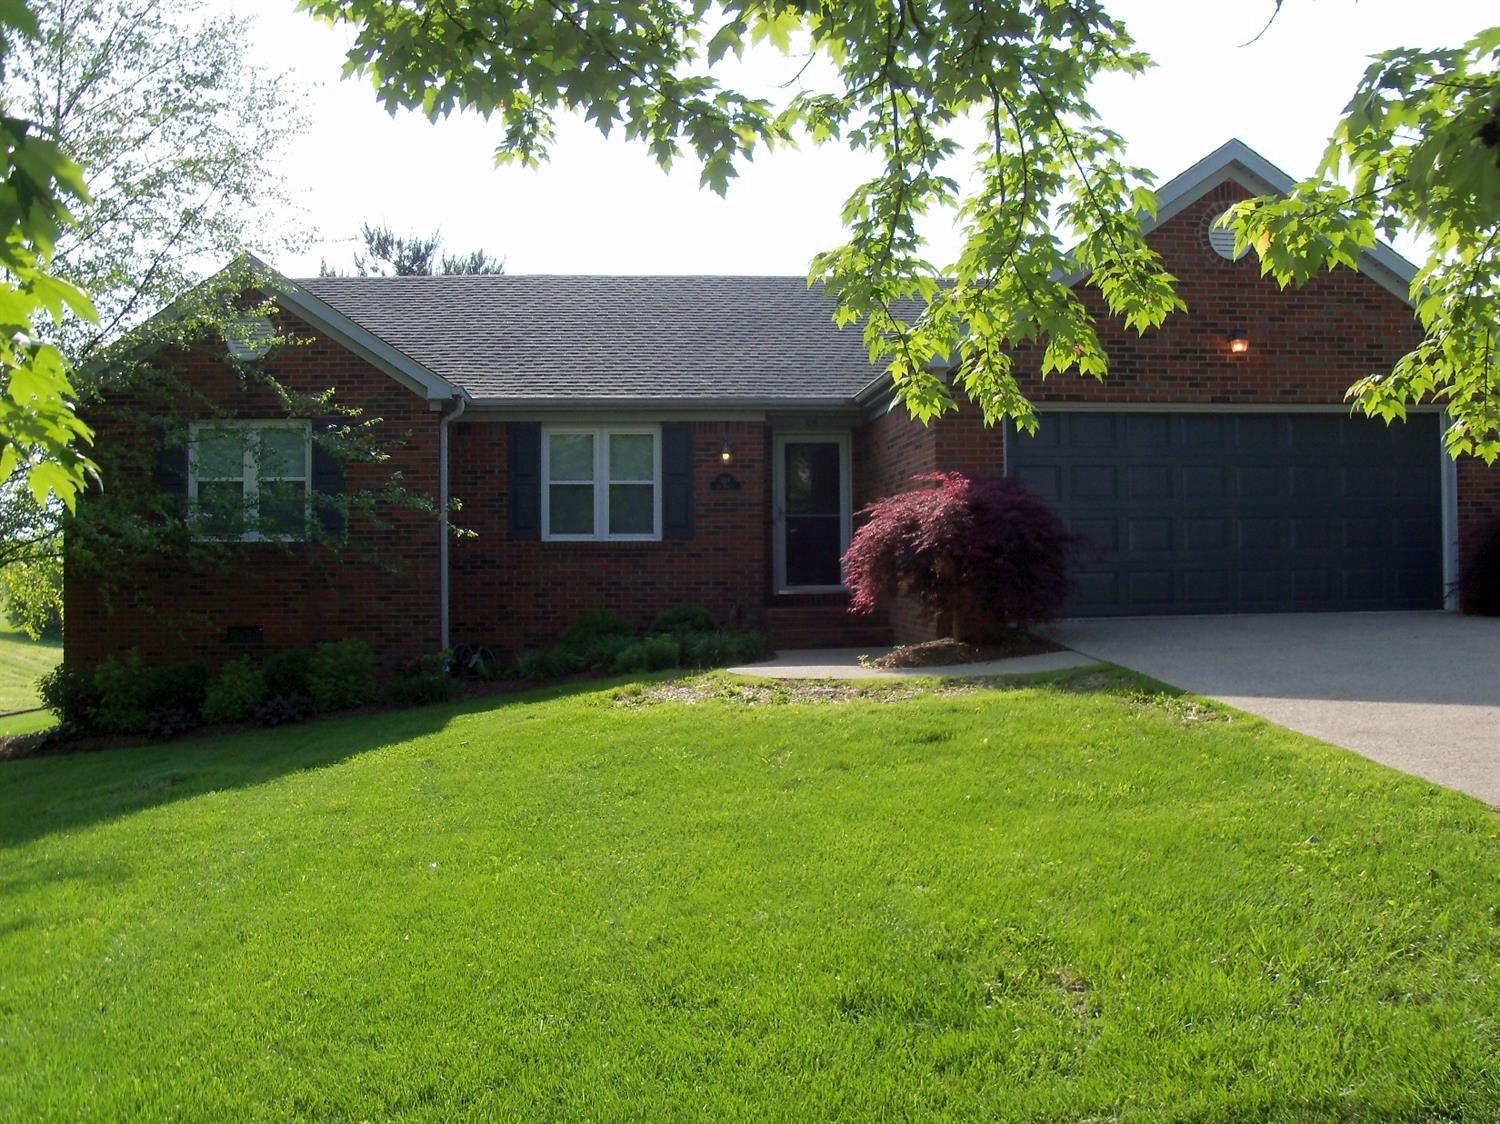 Home For Sale at 973 E Count Fleet, Danville, KY 40422